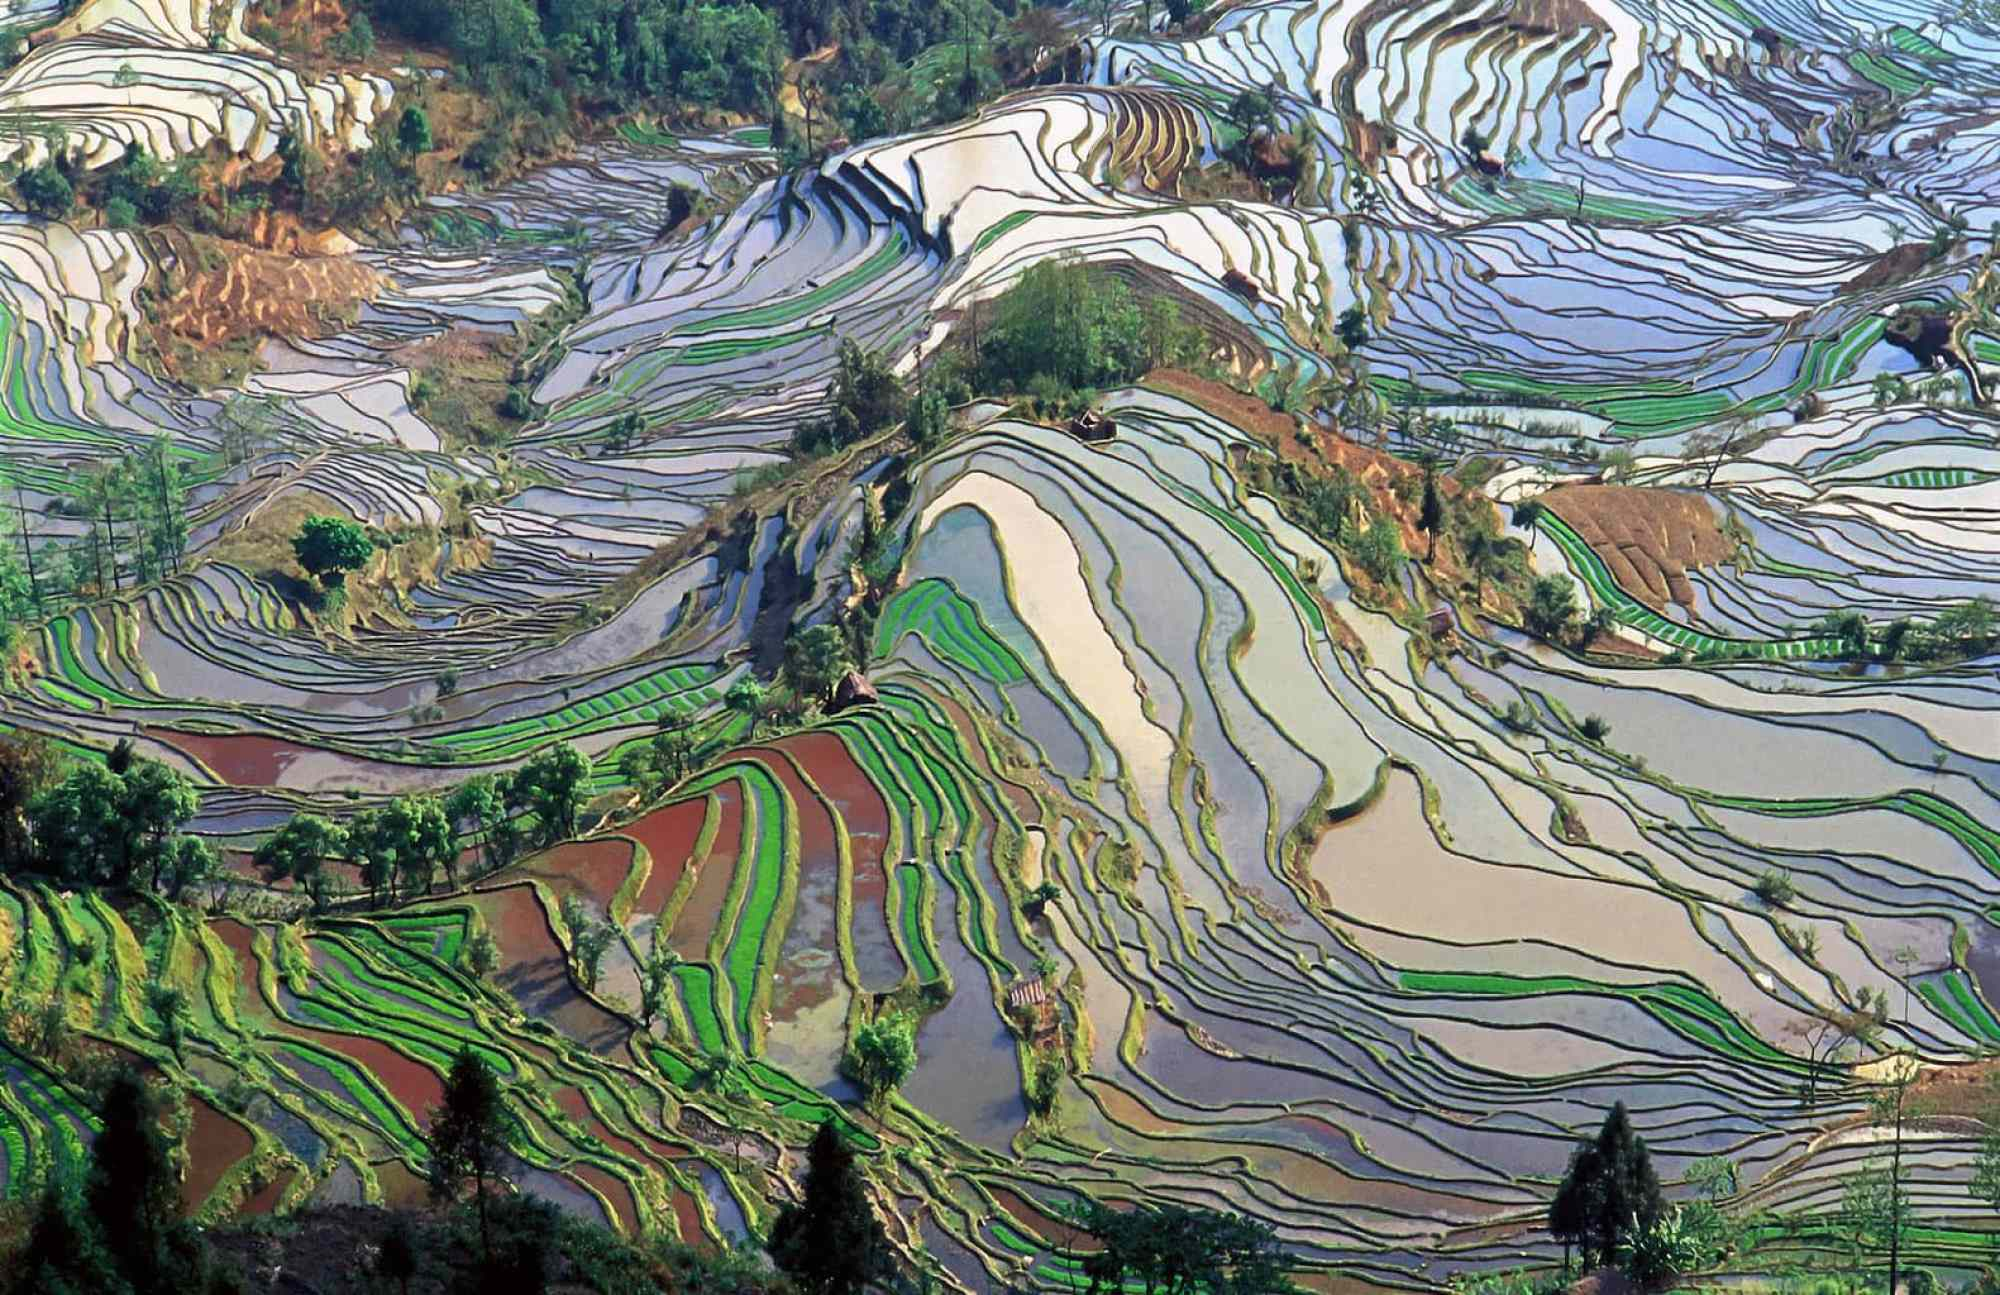 """Honghe Hani Rice Terraces, Jialiang Gao, www.peace-on-earth.org GFDL/CC-by-sa-2.5"""